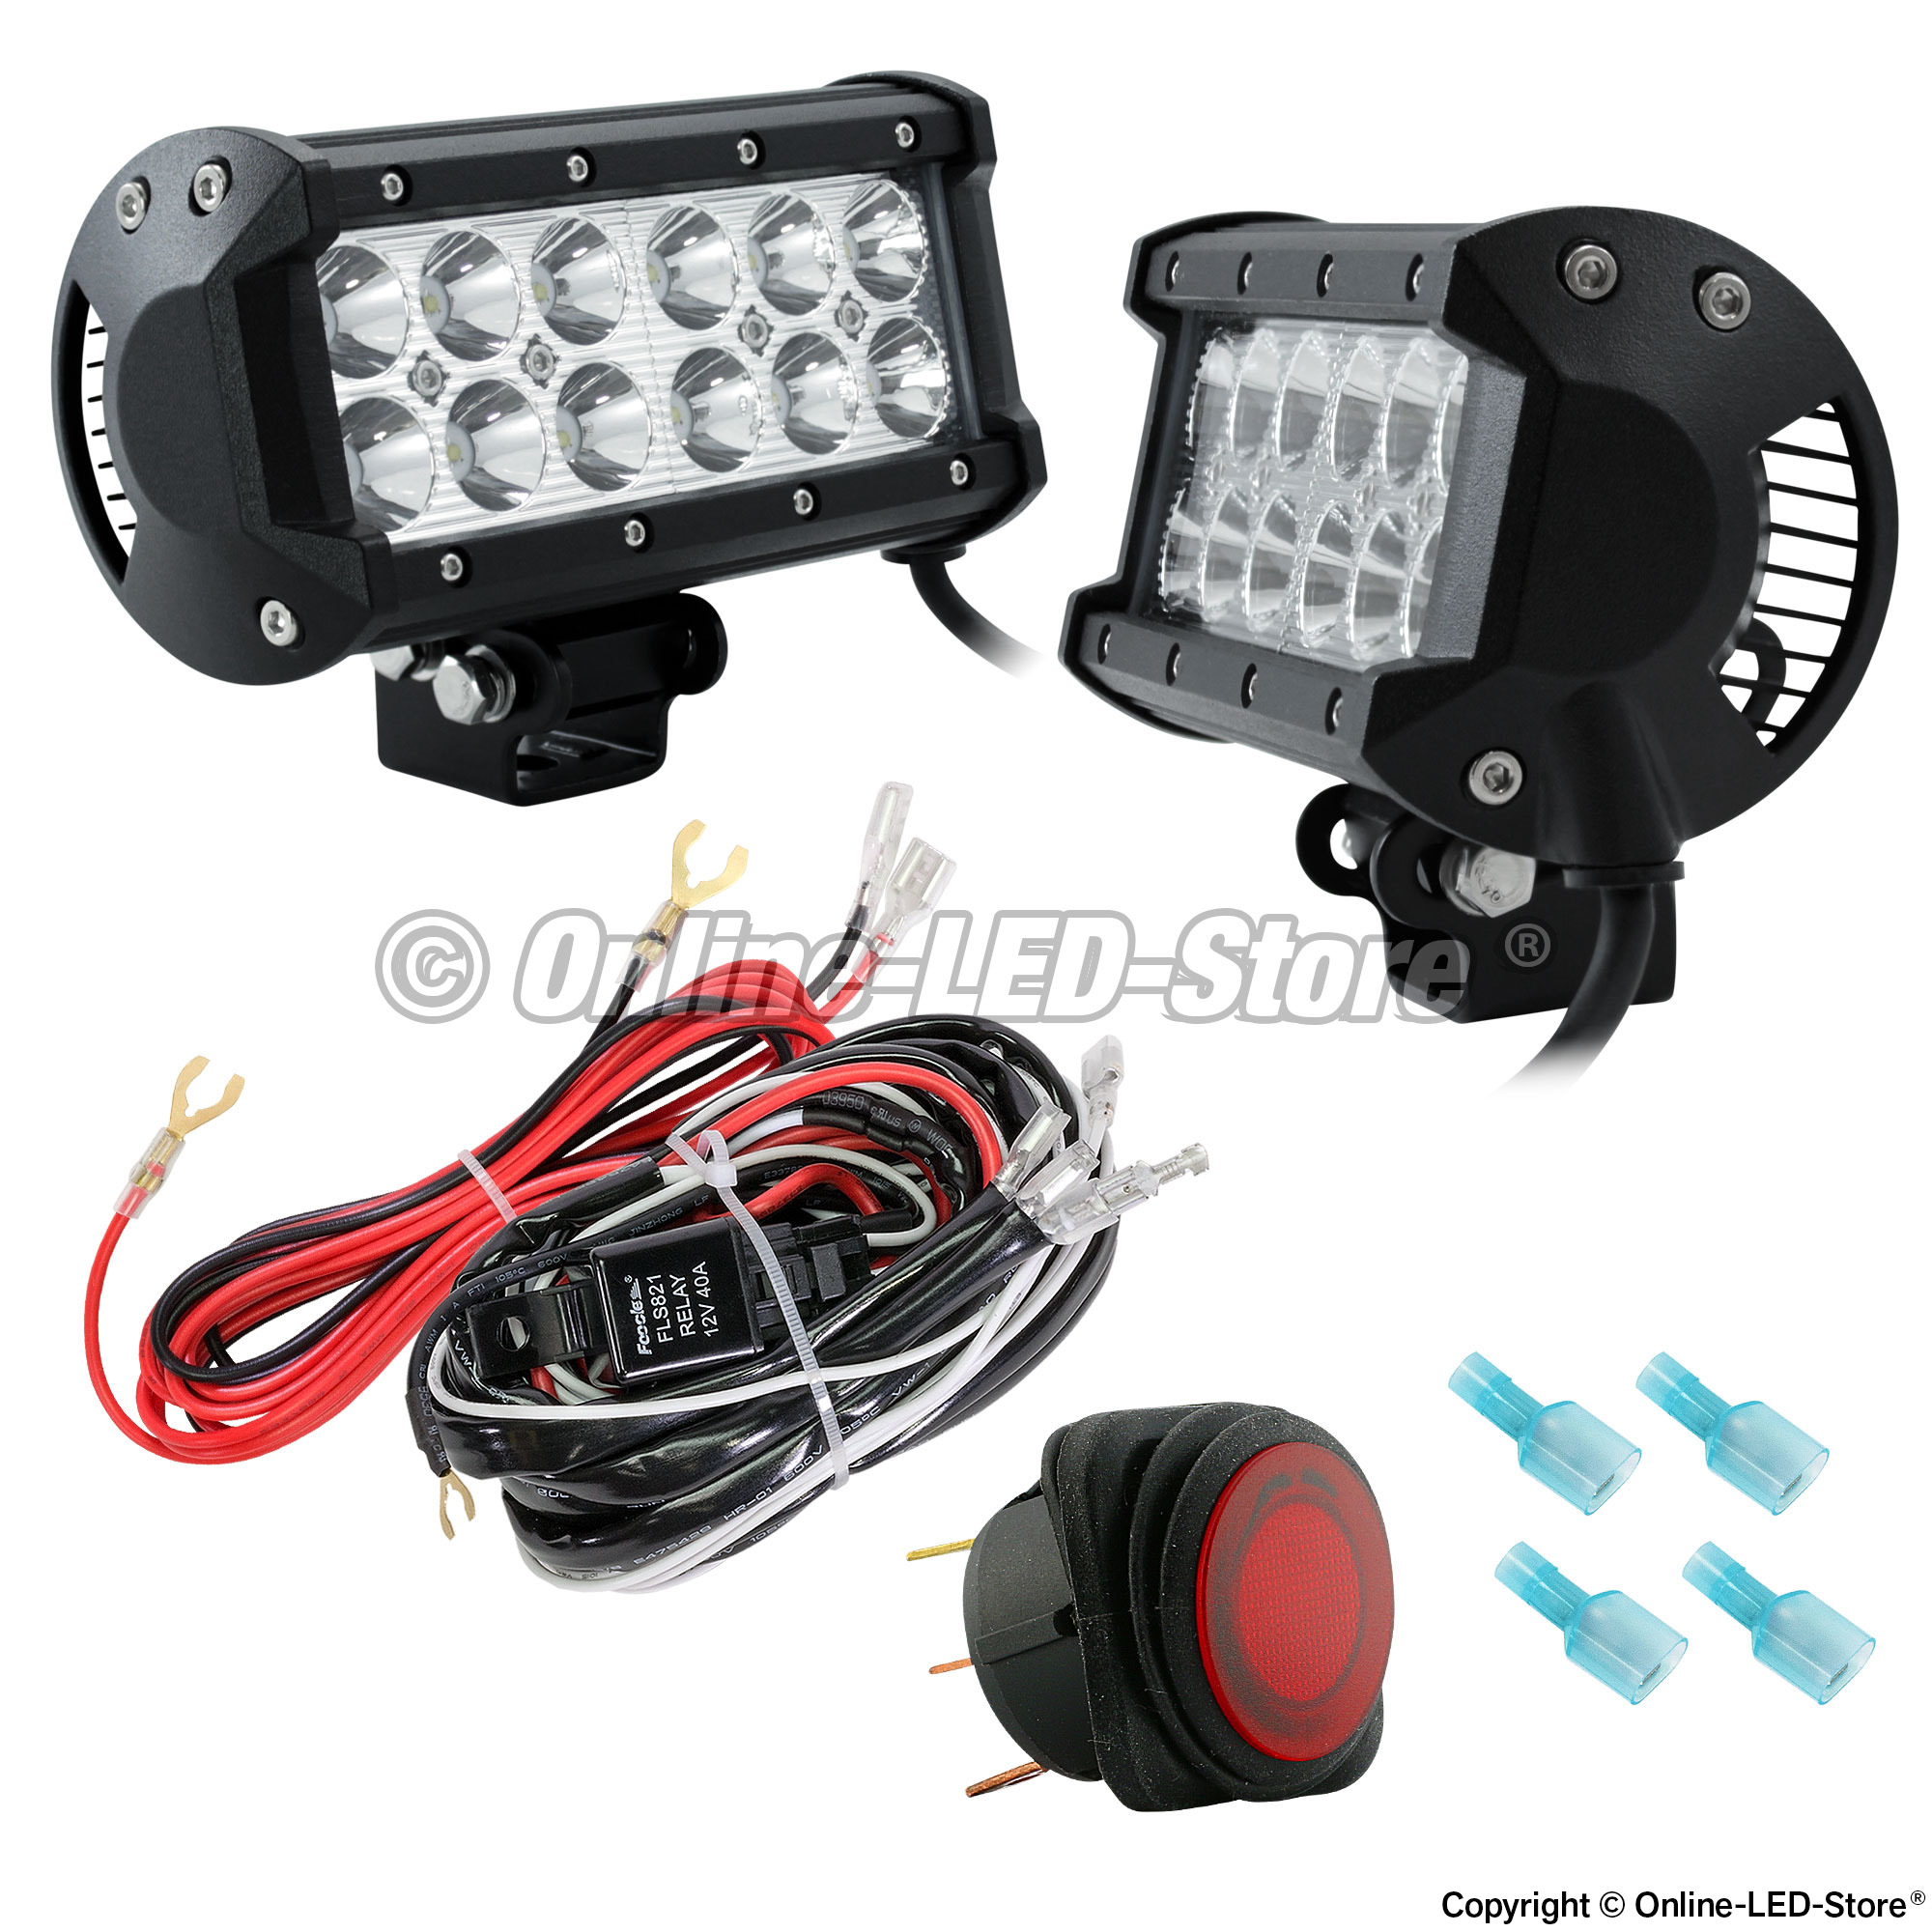 Led snow plow lights snow plow headlights online led store 2pc lamphus cruizer crlb12 65 36w off road led light bar wiring harness kit mozeypictures Choice Image